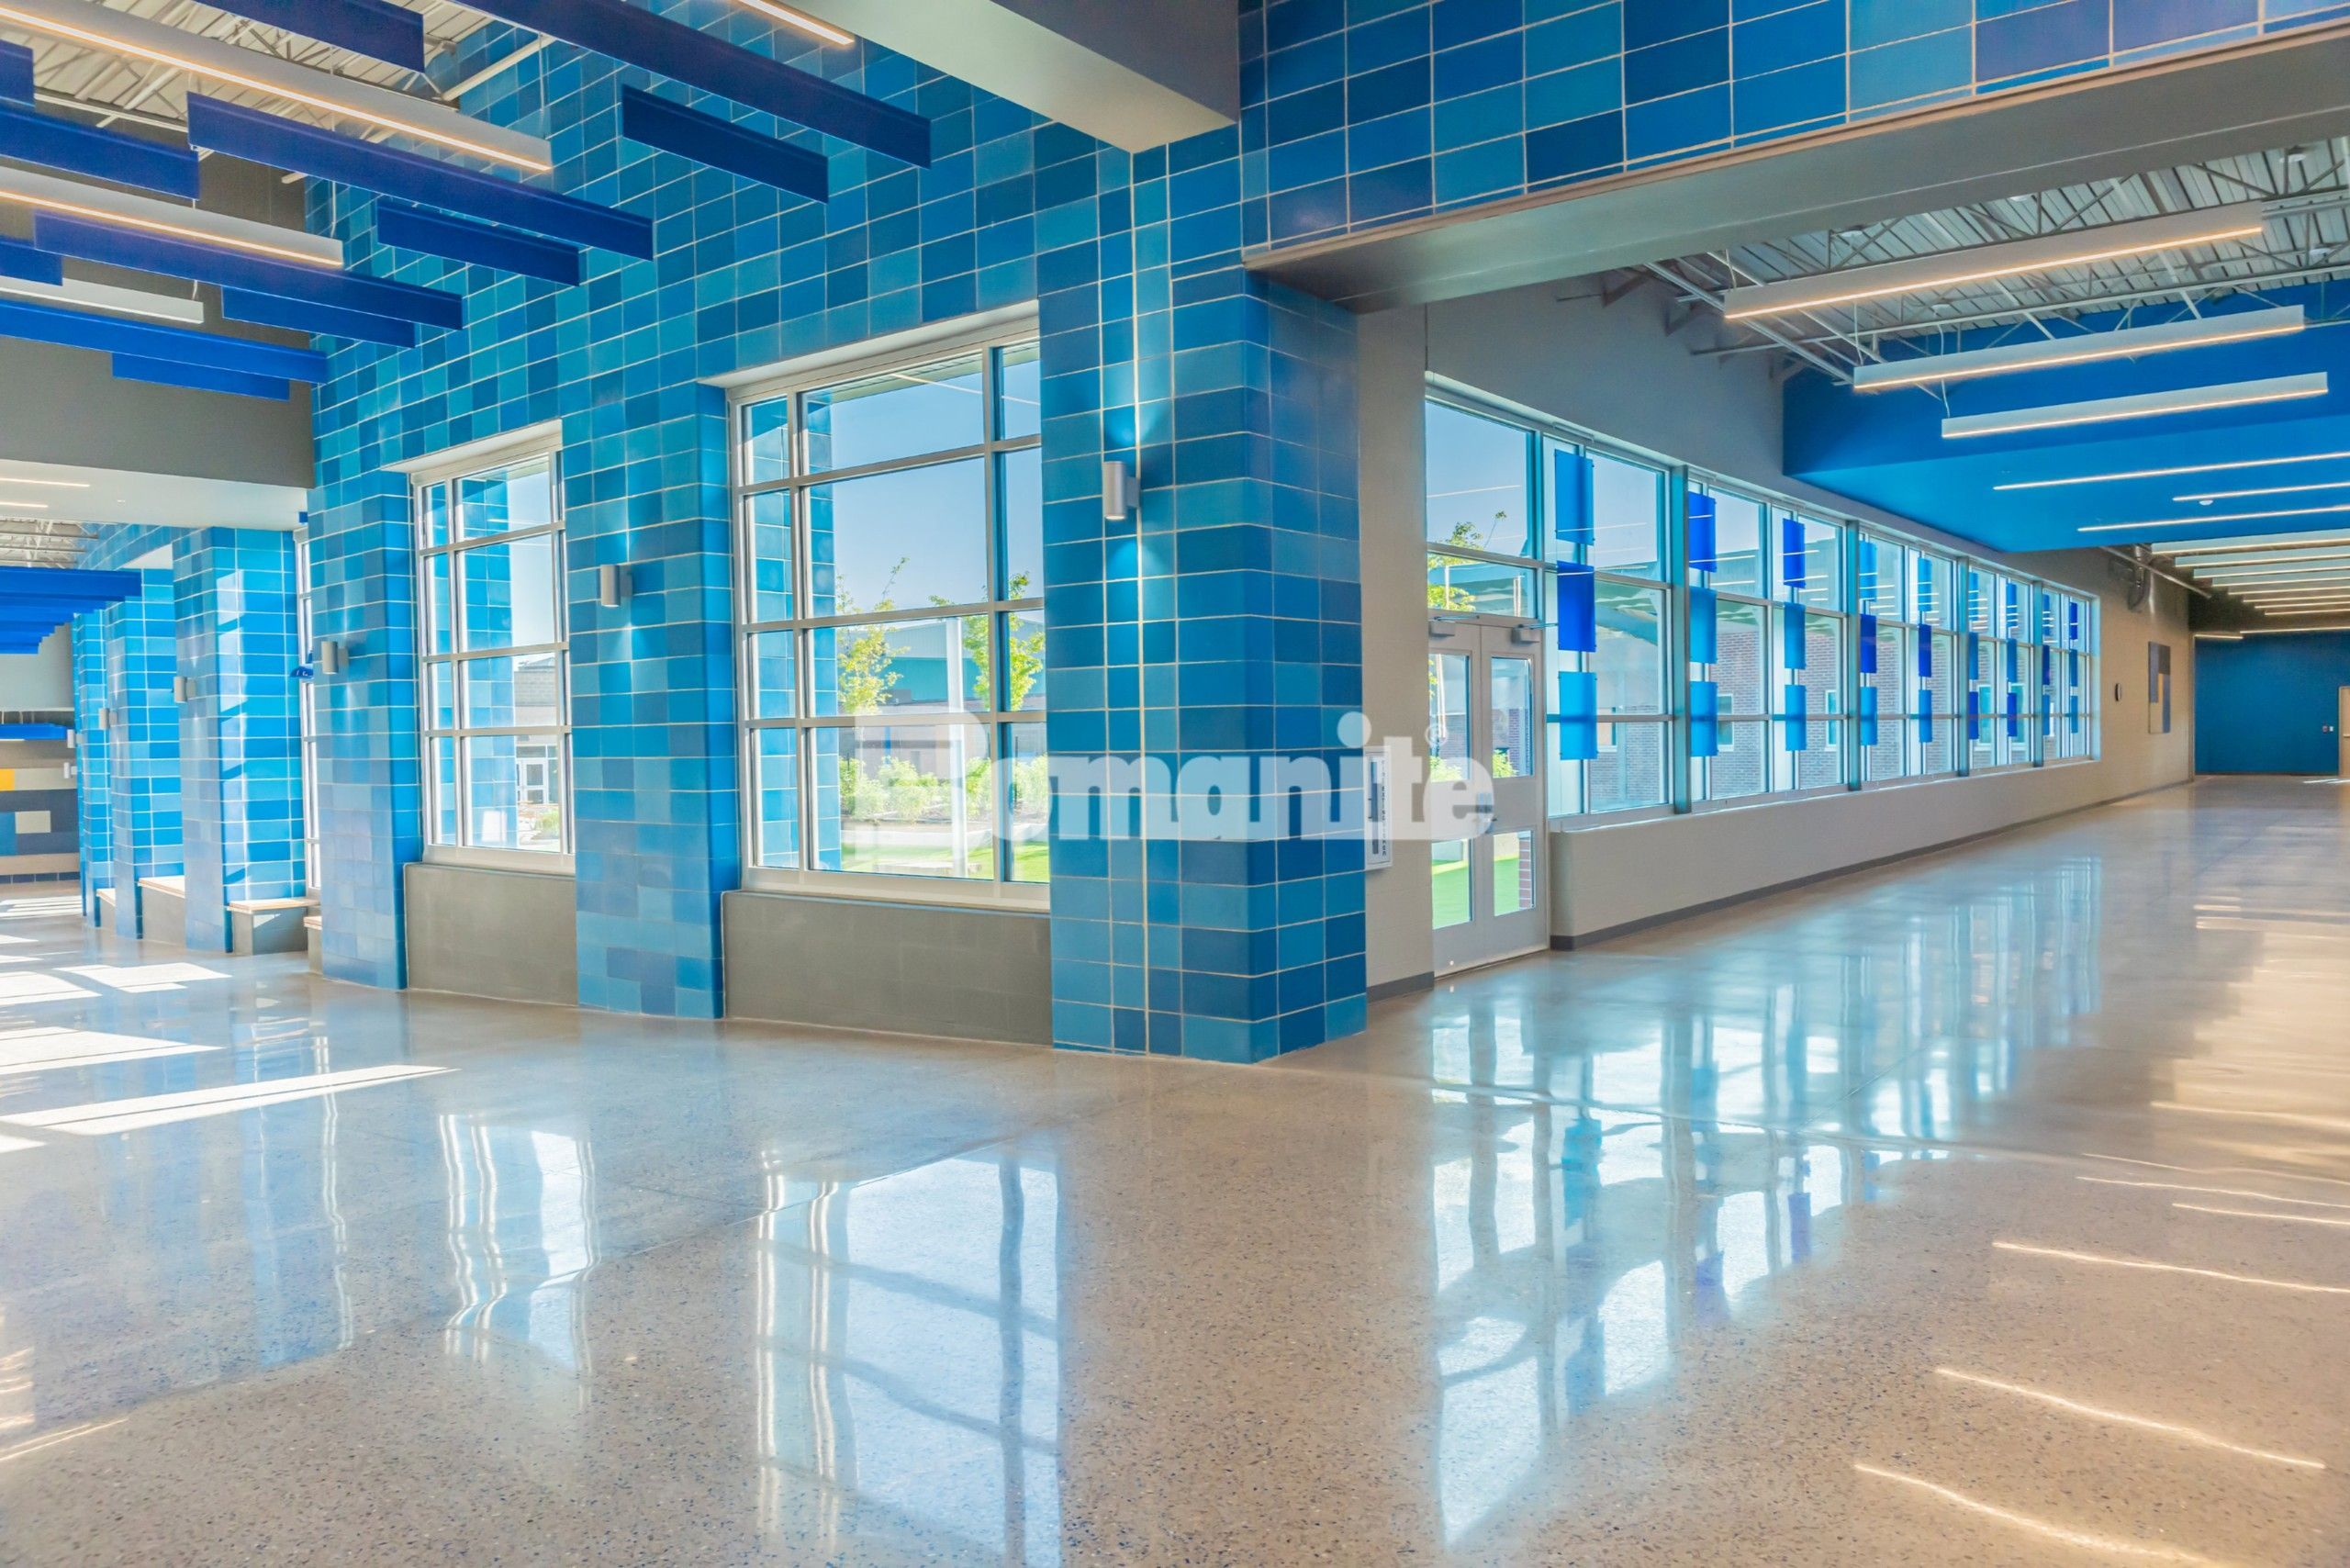 Main entrance of Grain Valley High School who worked with Hollis + Miller Architects to renovate and expand their rapidly growing community. Musselman & Hall Contractors installed the Bomanite Modena SL Custom Polishing System for their main entrance, hallways and other hard flooring surfaces.